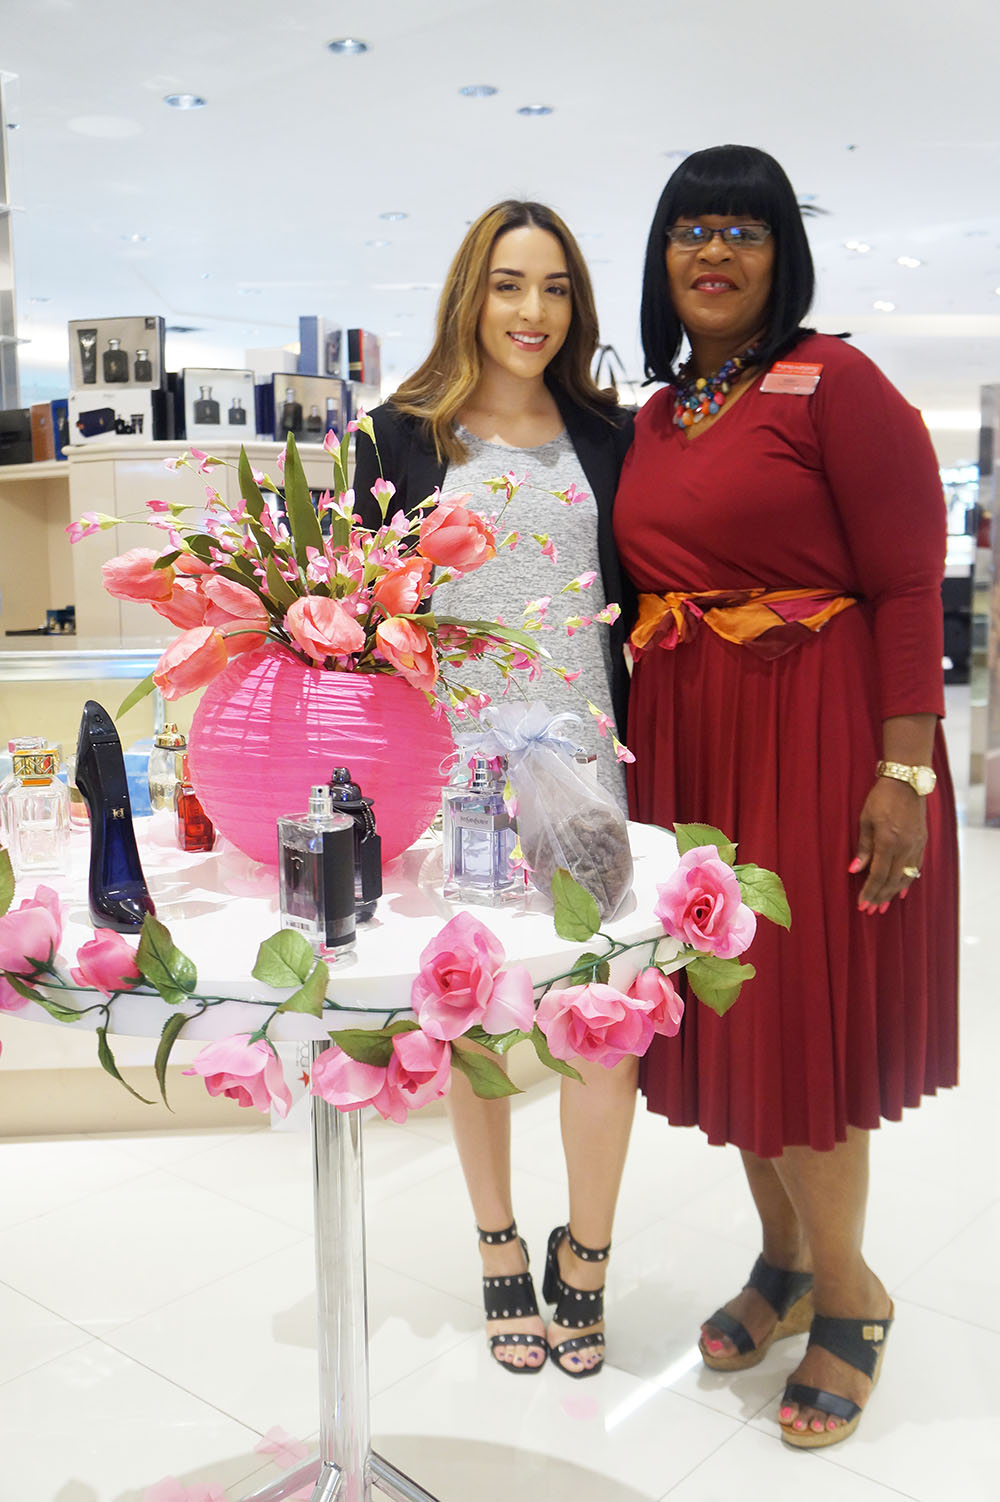 Andrea Fenise Memphis Fashion Blogger covers Macy's Oak Court Come As You Art Event